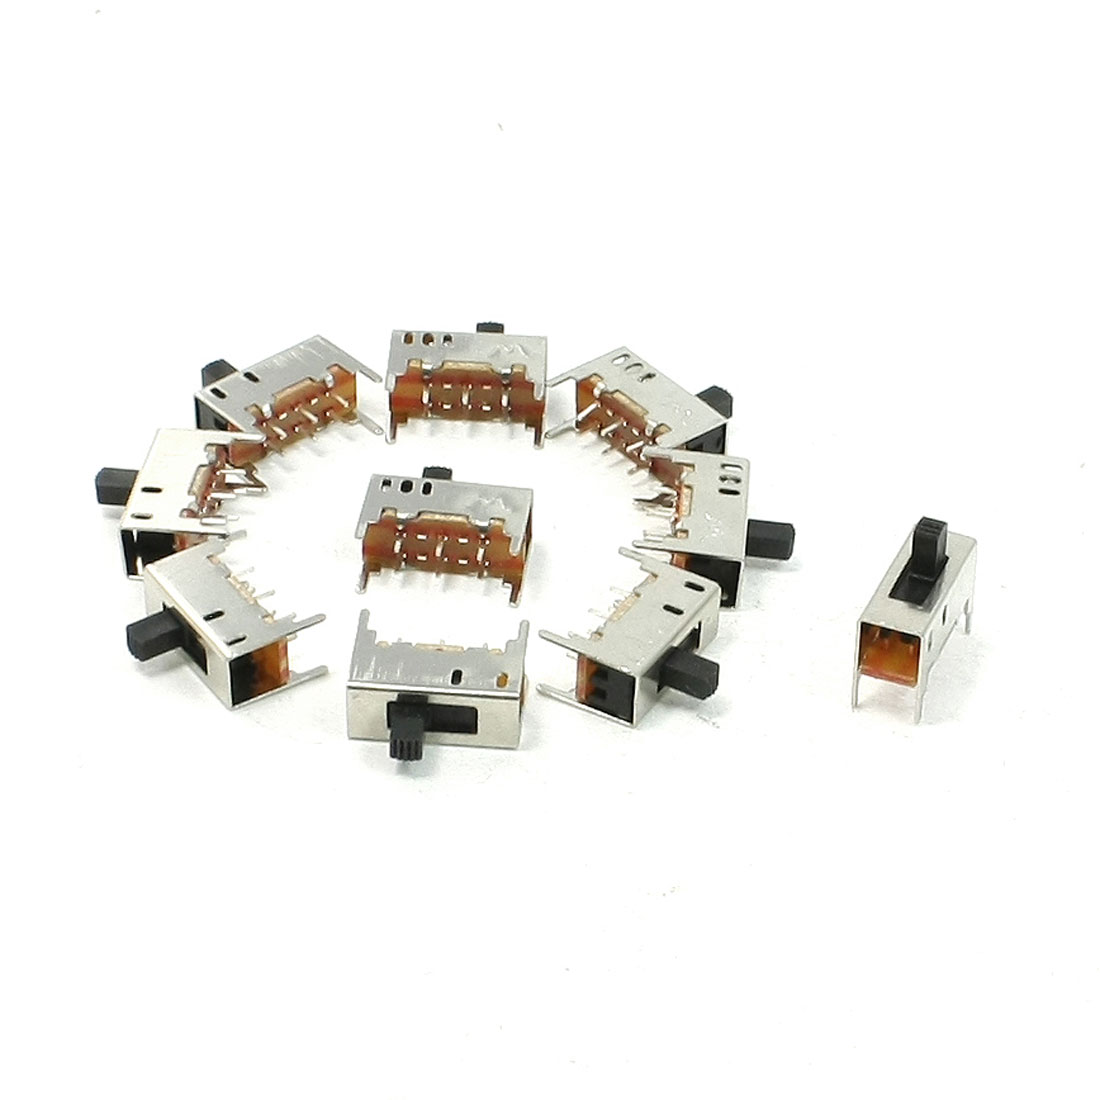 10pcs AC 50V 0.5A On/On 2 Position 2P2T DPDT Miniature Slide Switch SK22H03